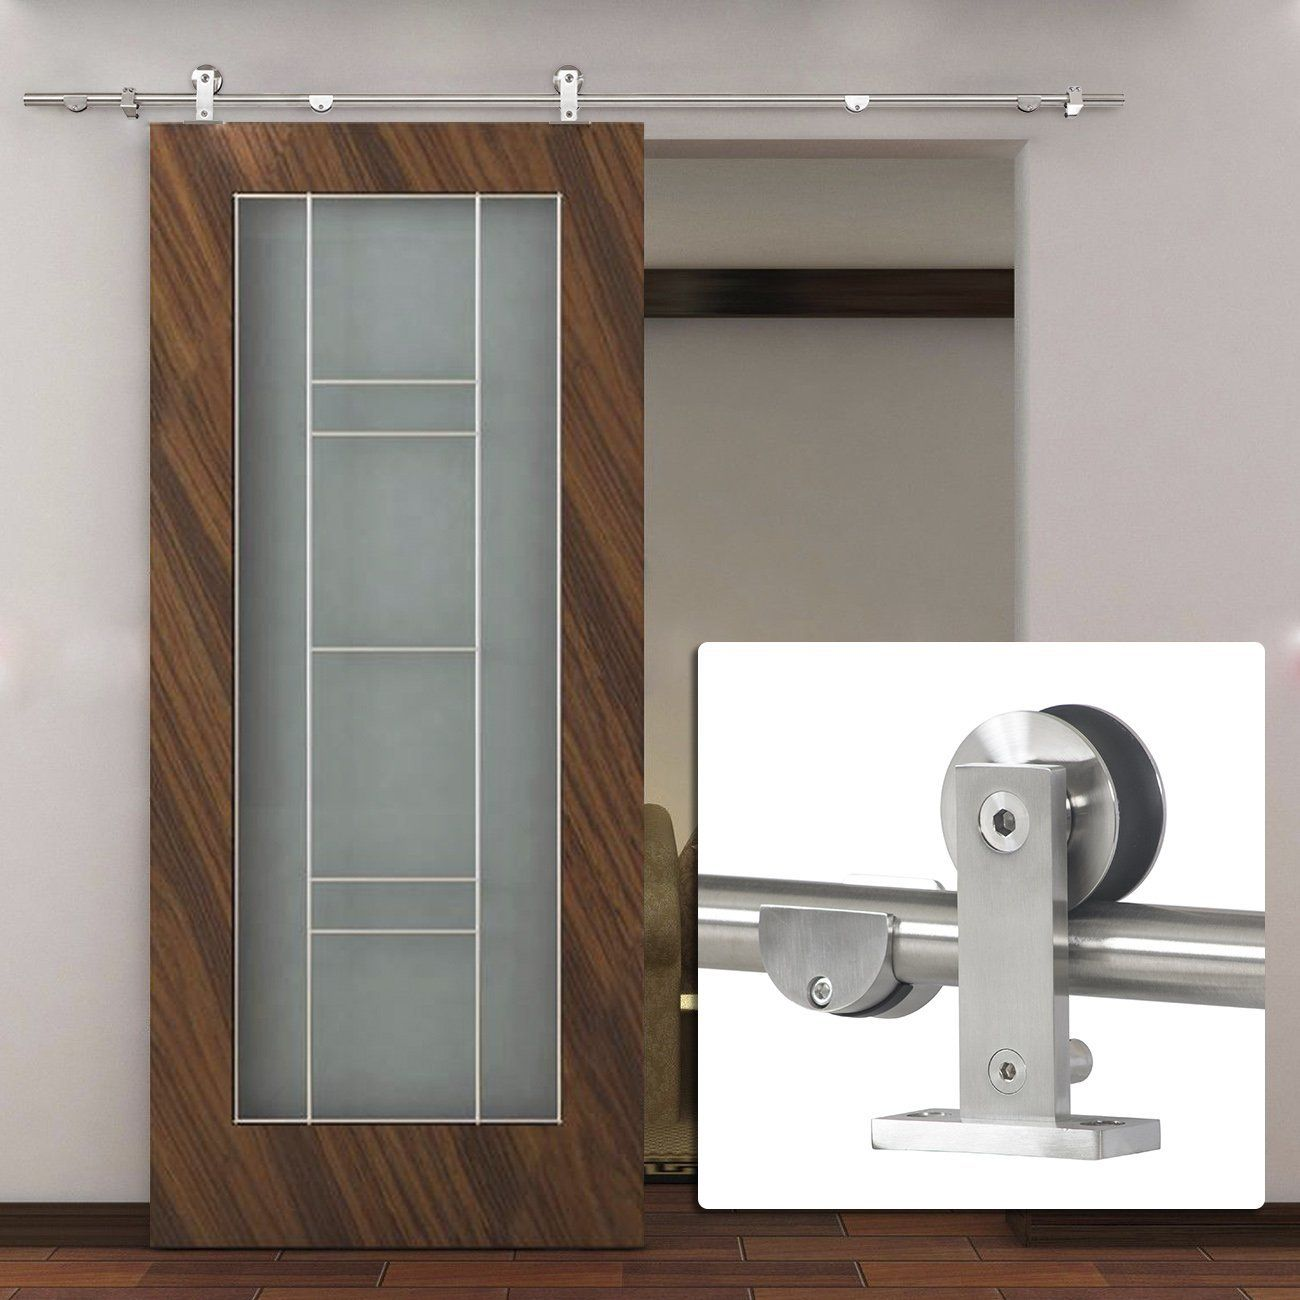 Homemade Sliding Door Closer: Amazon.com: Bellezza© 6.6 FT Stainless Steel Modern